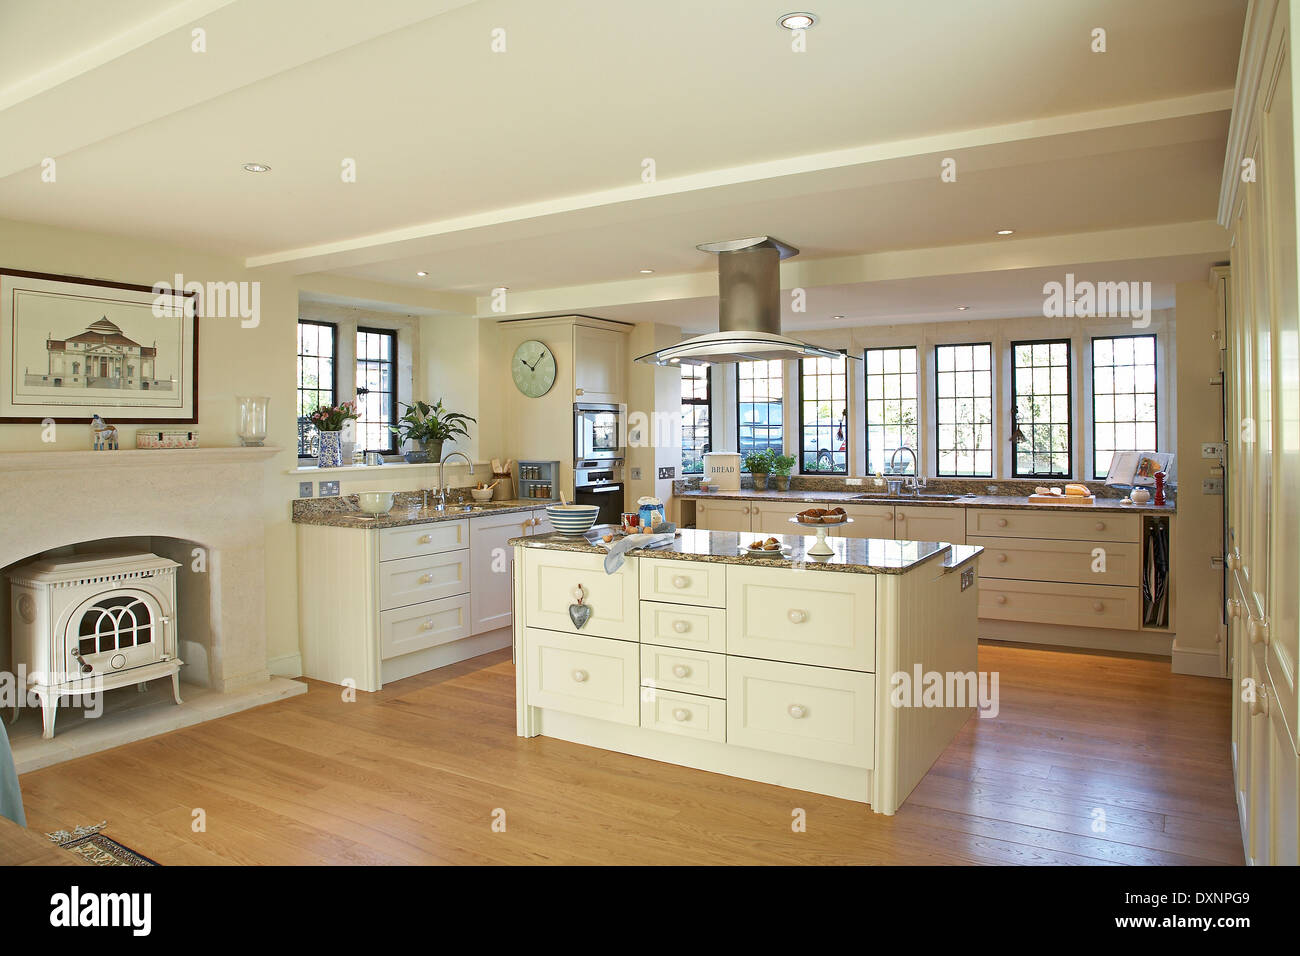 A Large Modern Cream Country Kitchen In A Home In The Uk Stock Photo